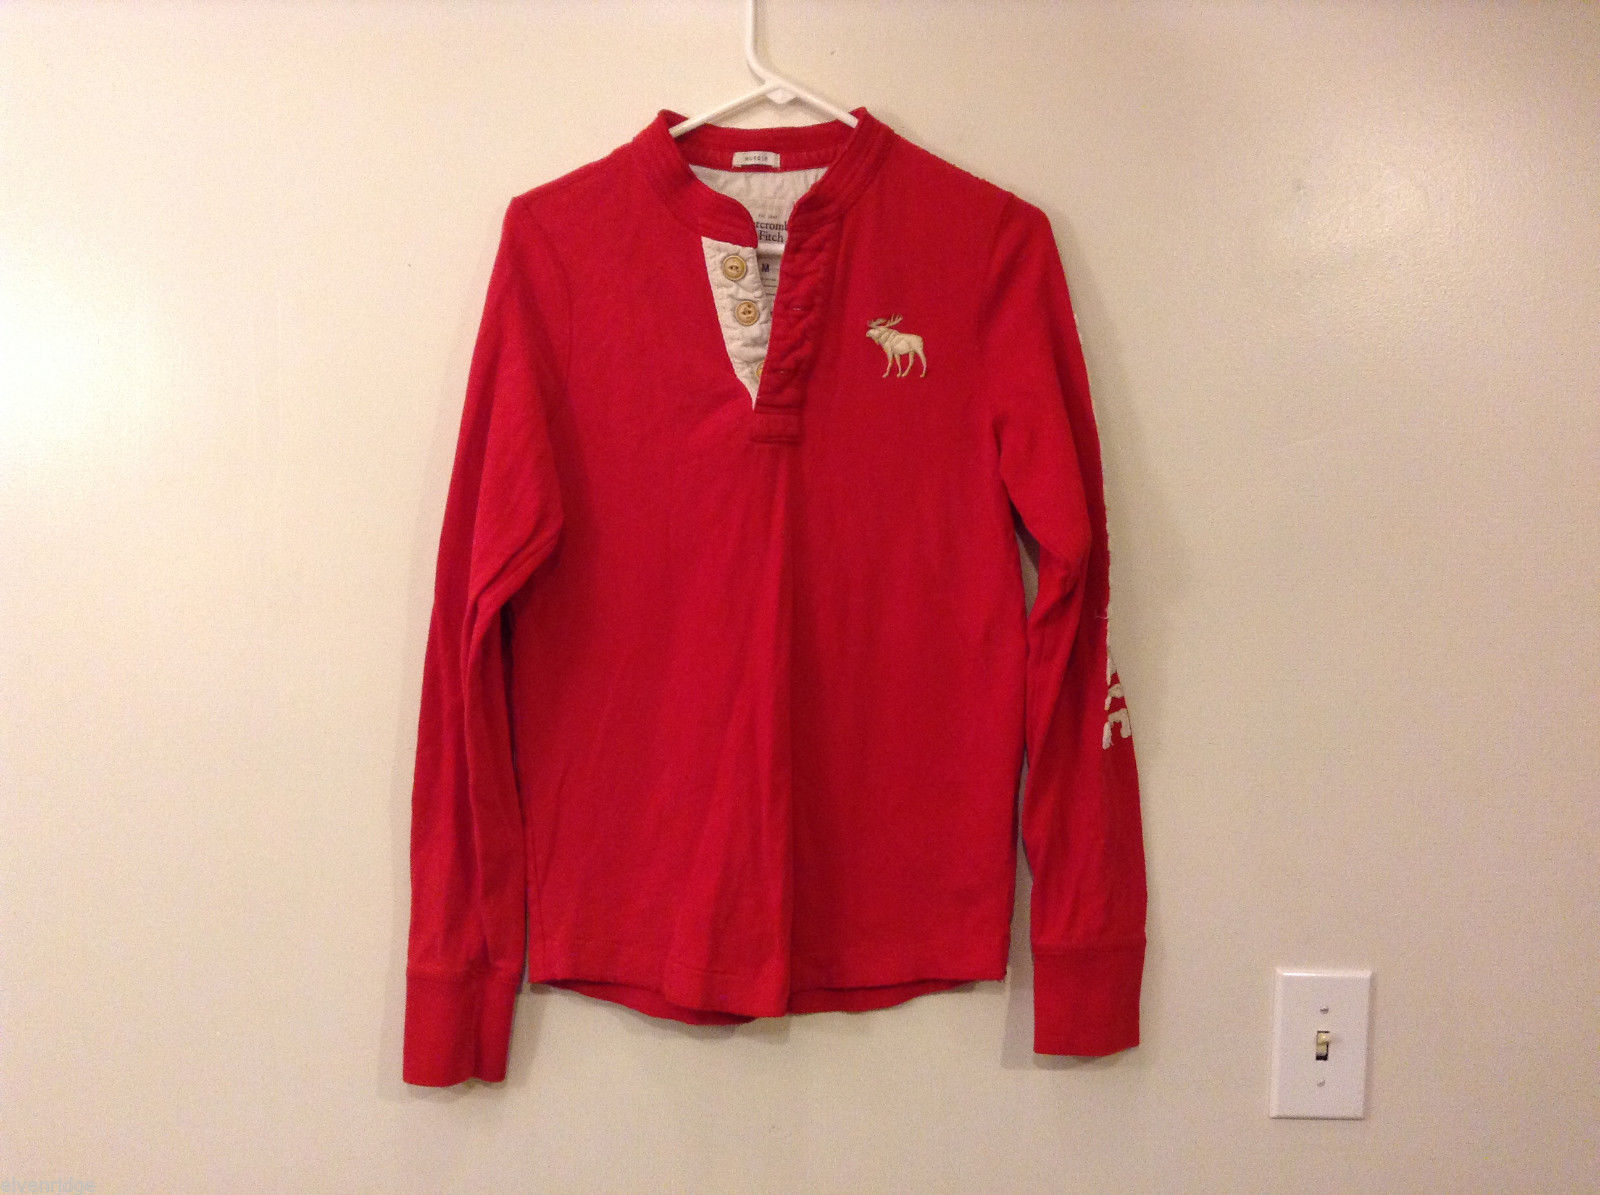 Mens Abercrombie & Fitch Red 100% Cotton Long Sleeve Sweatshirt T-shirt, size M